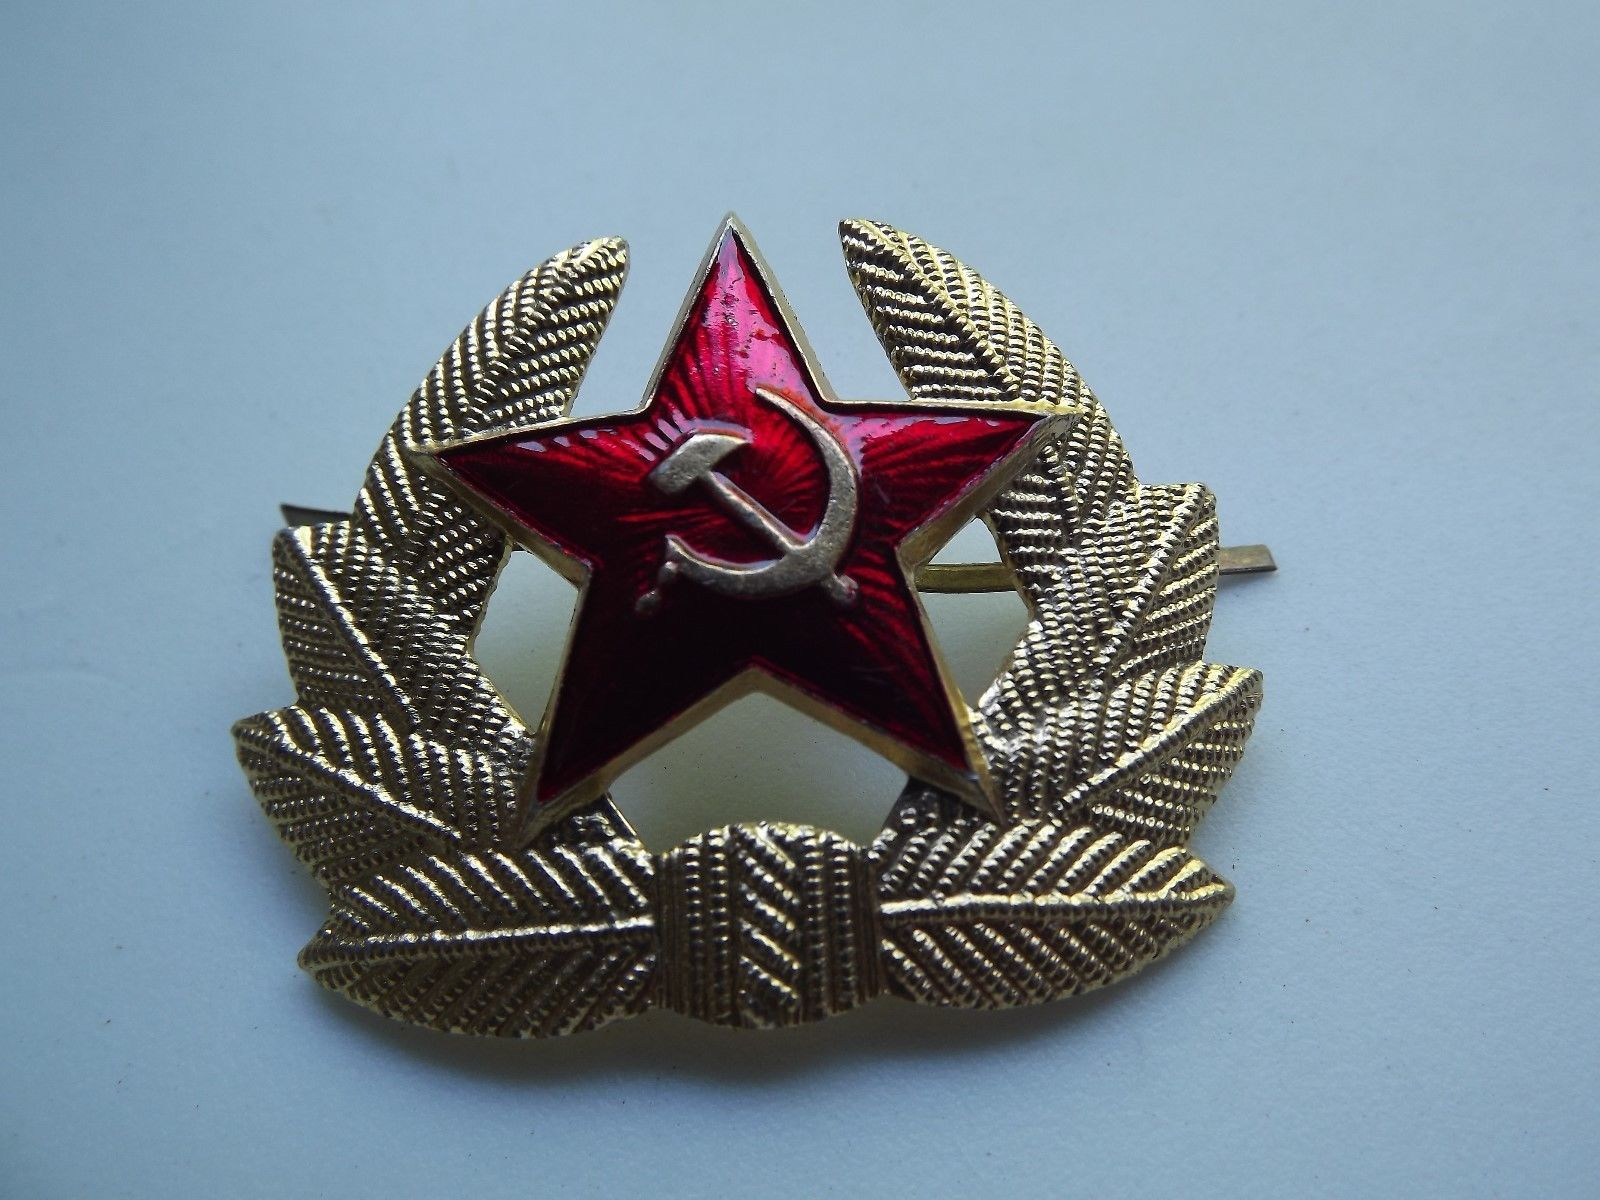 3eeb52cea4bc7 Badge Red Star Soviet Russian Army Soldier and 50 similar items. 57